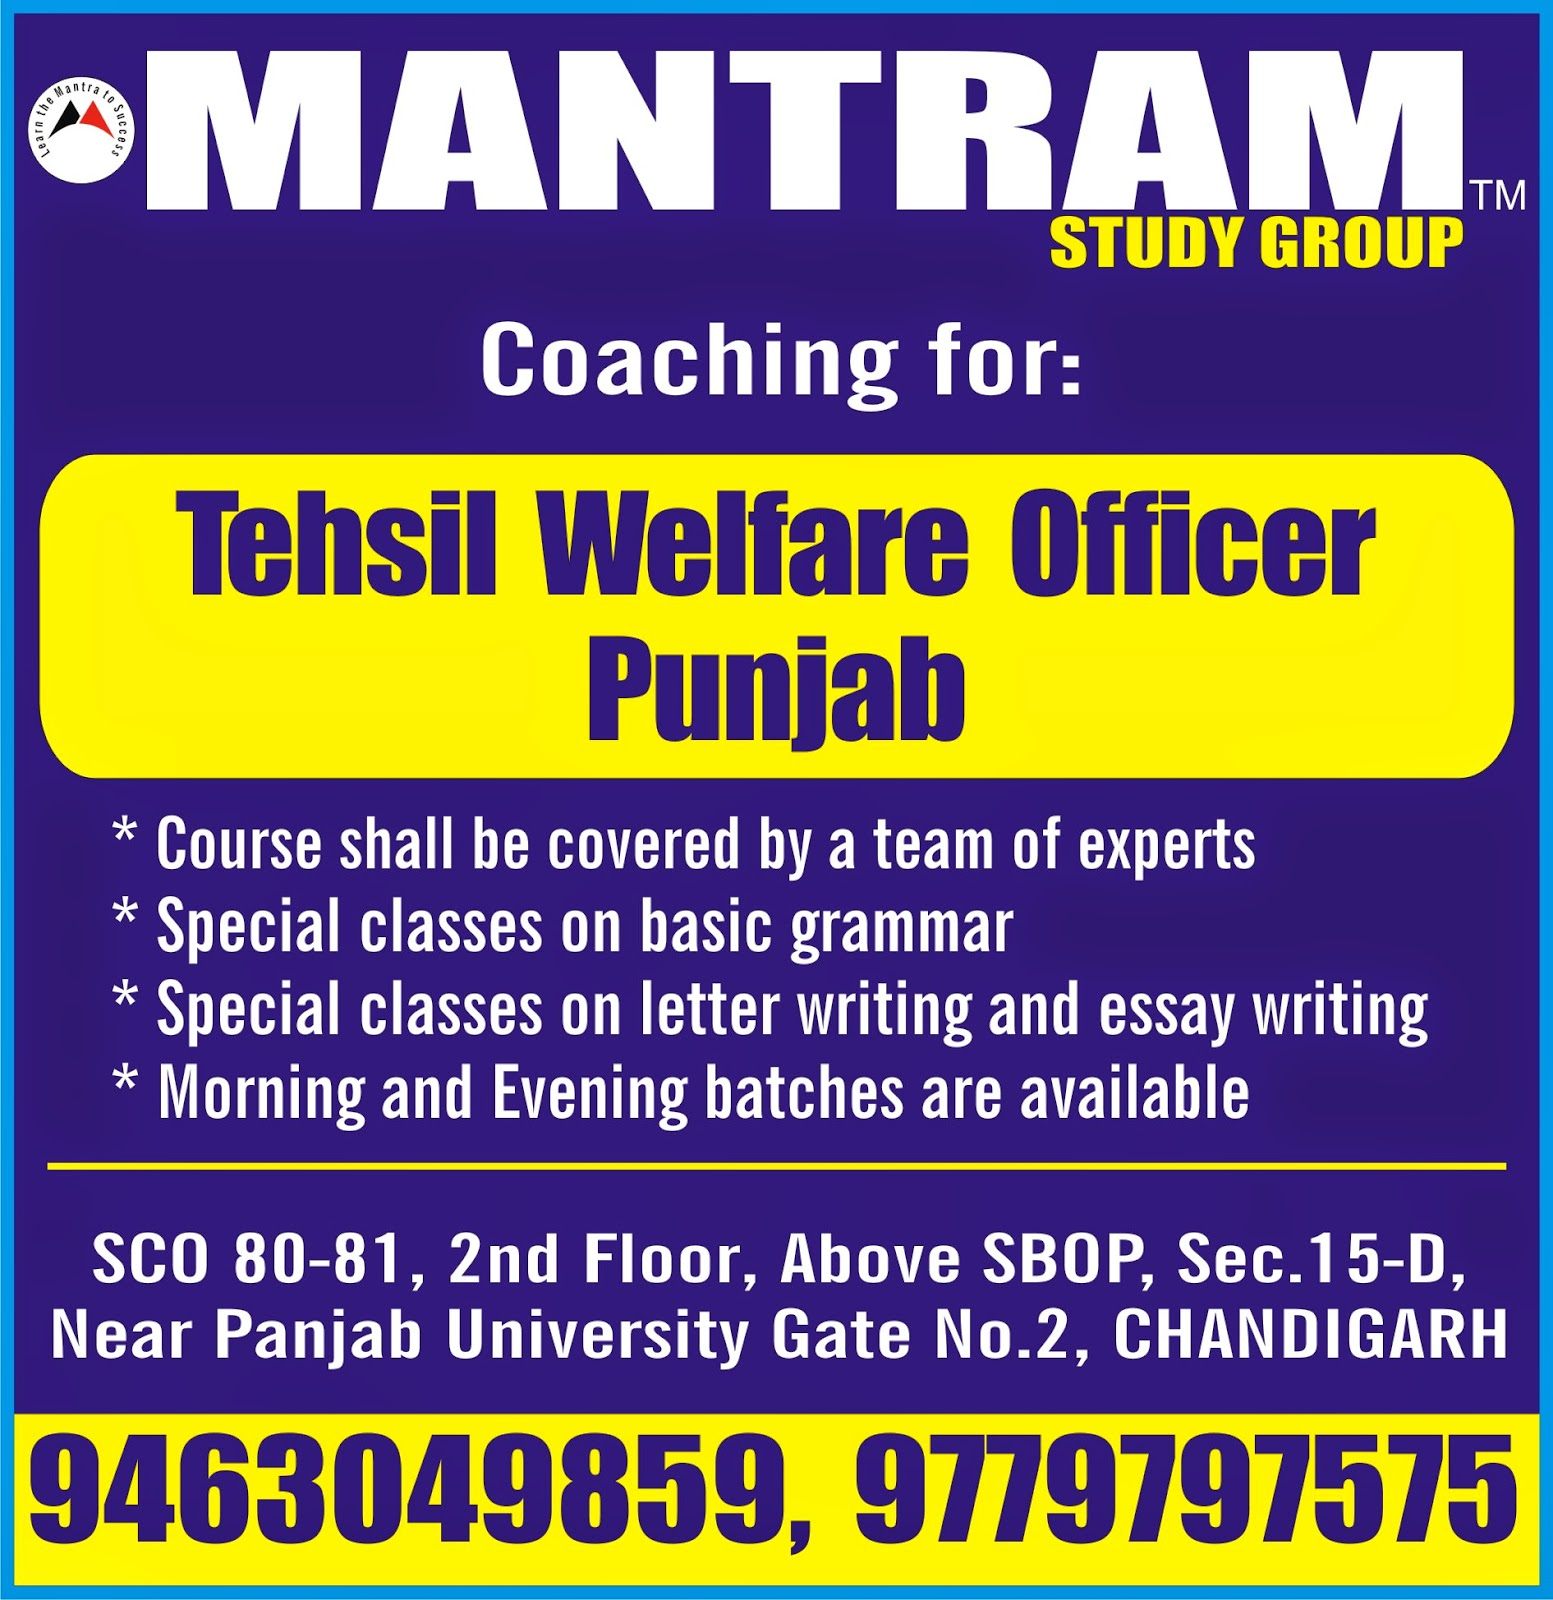 mantram study group punjab jobs  join coaching for tehsil welfare officer punjab by mantram study group in chandigarh